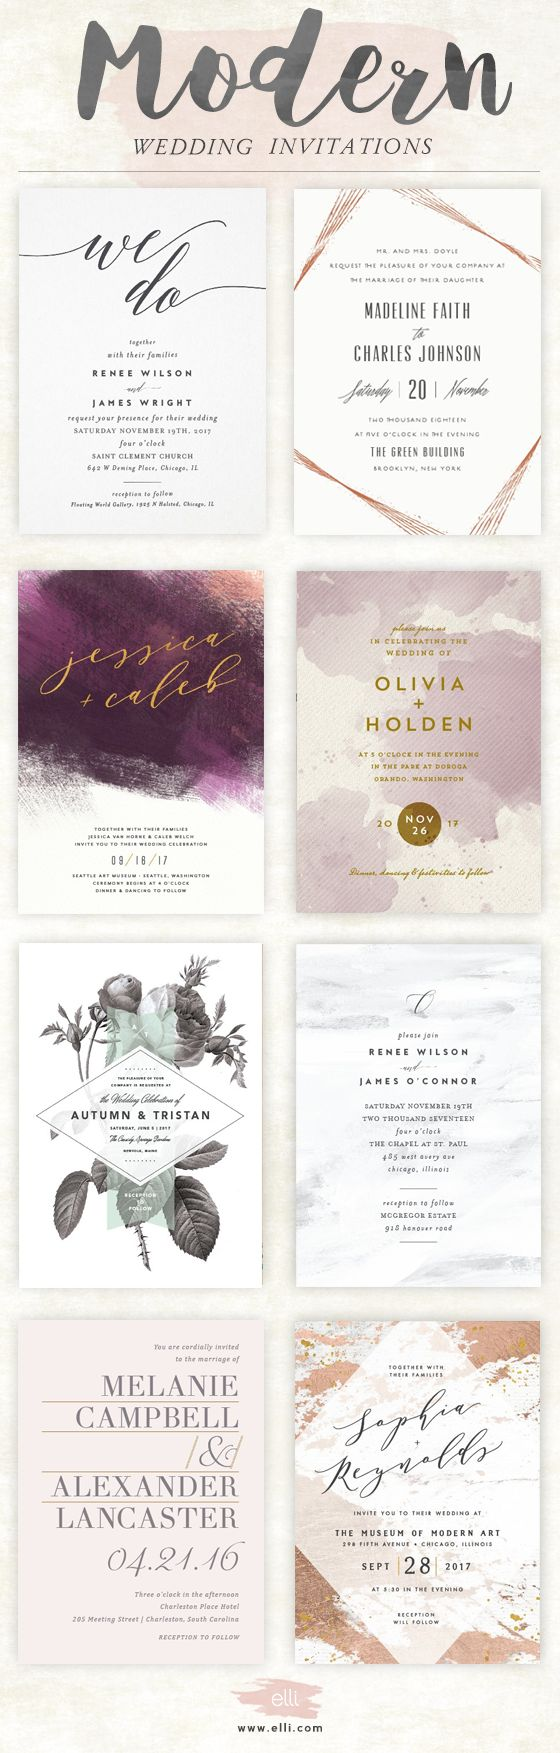 Best 25+ Wedding invitations ideas on Pinterest | Formal ...